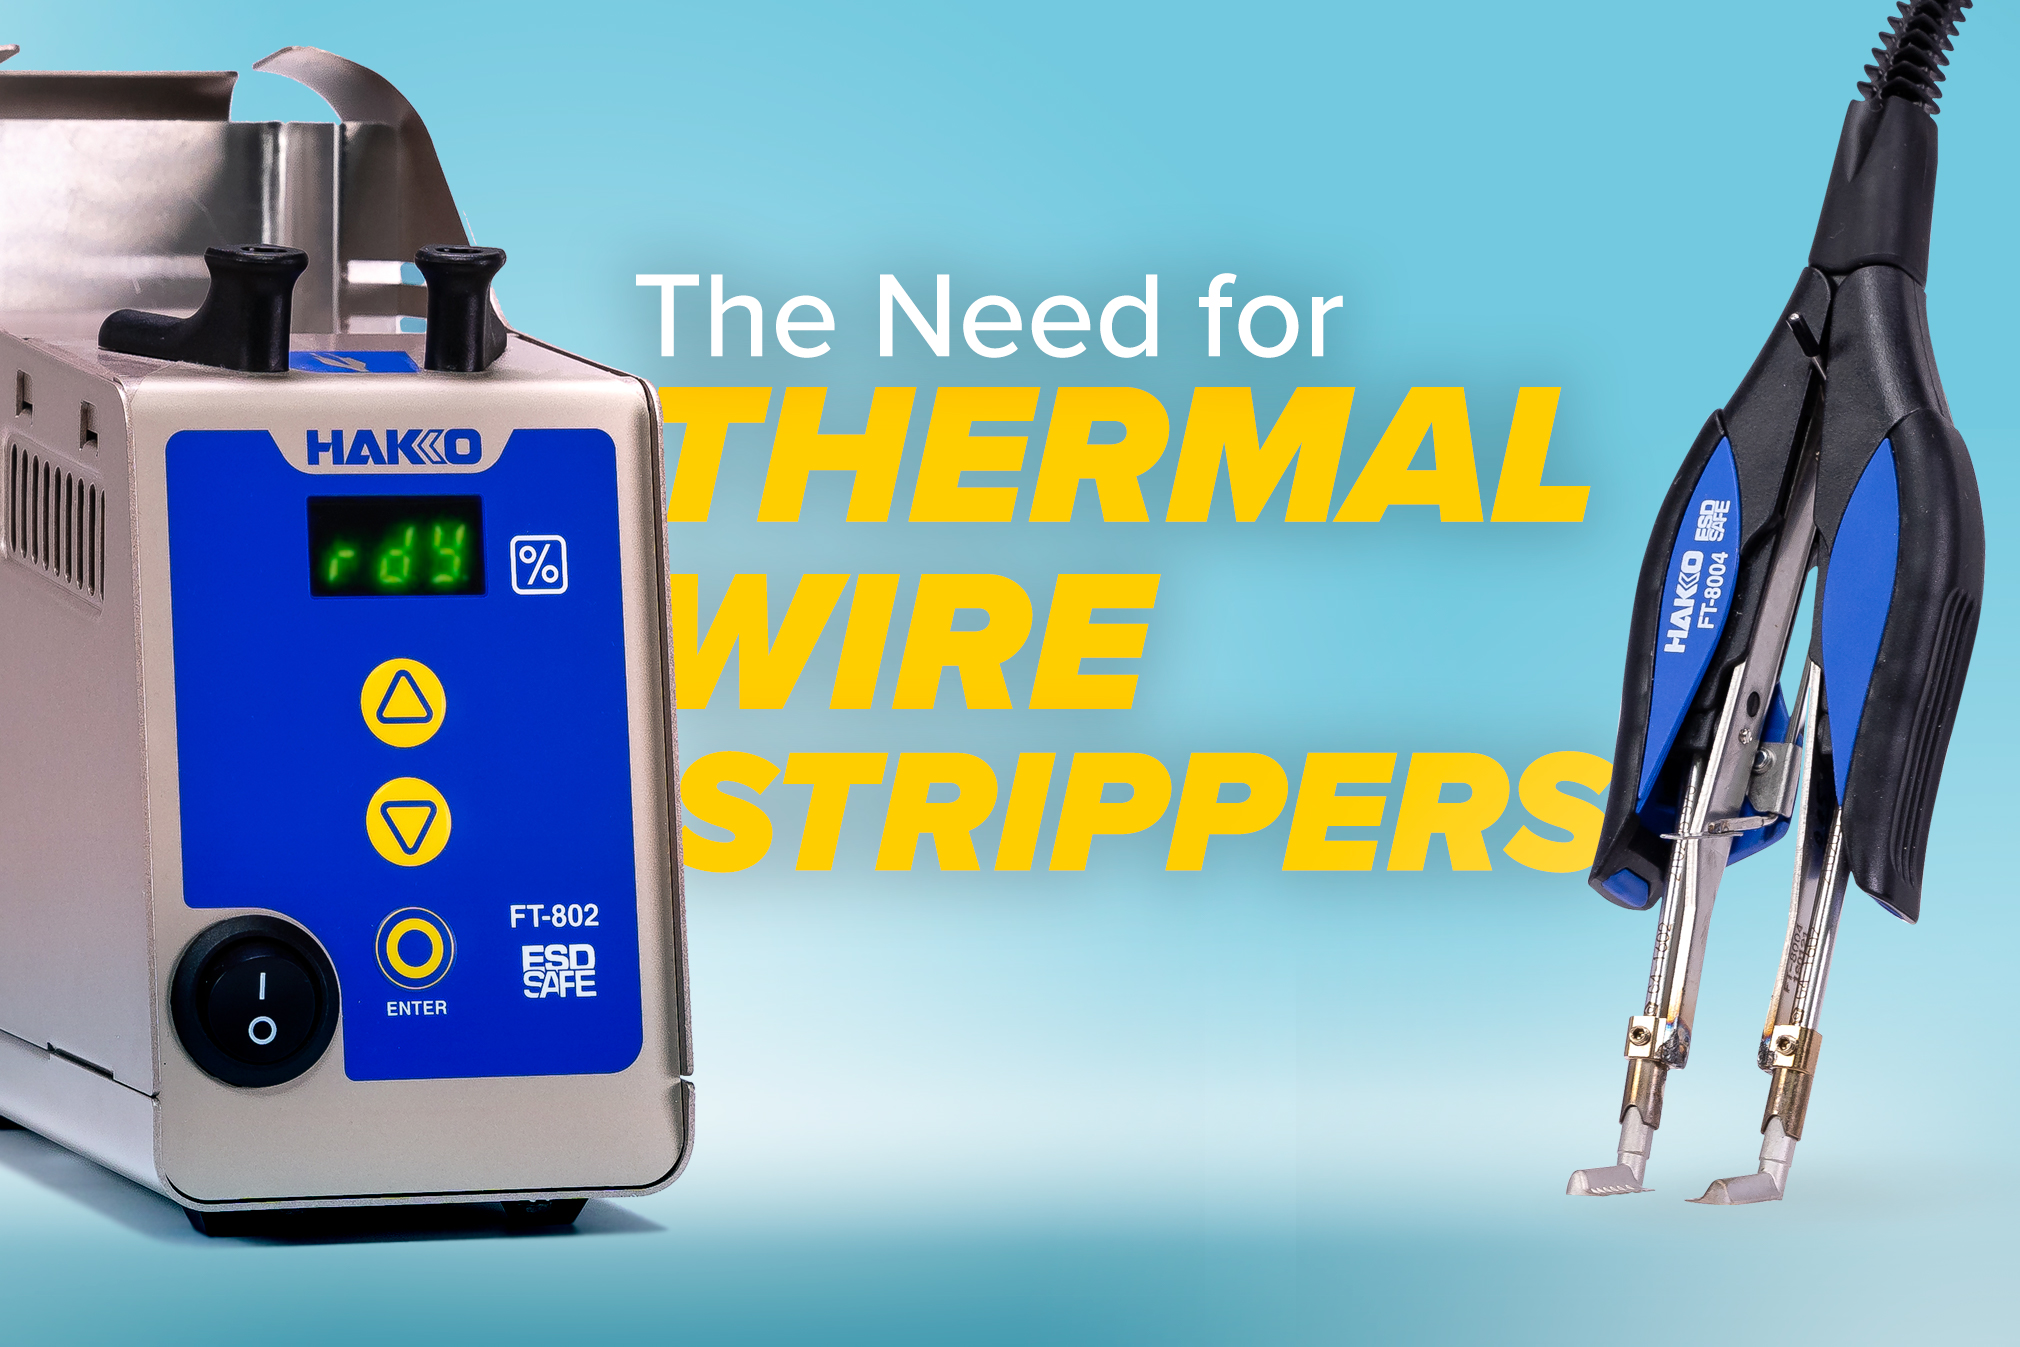 The Need for Thermal Wire Strippers